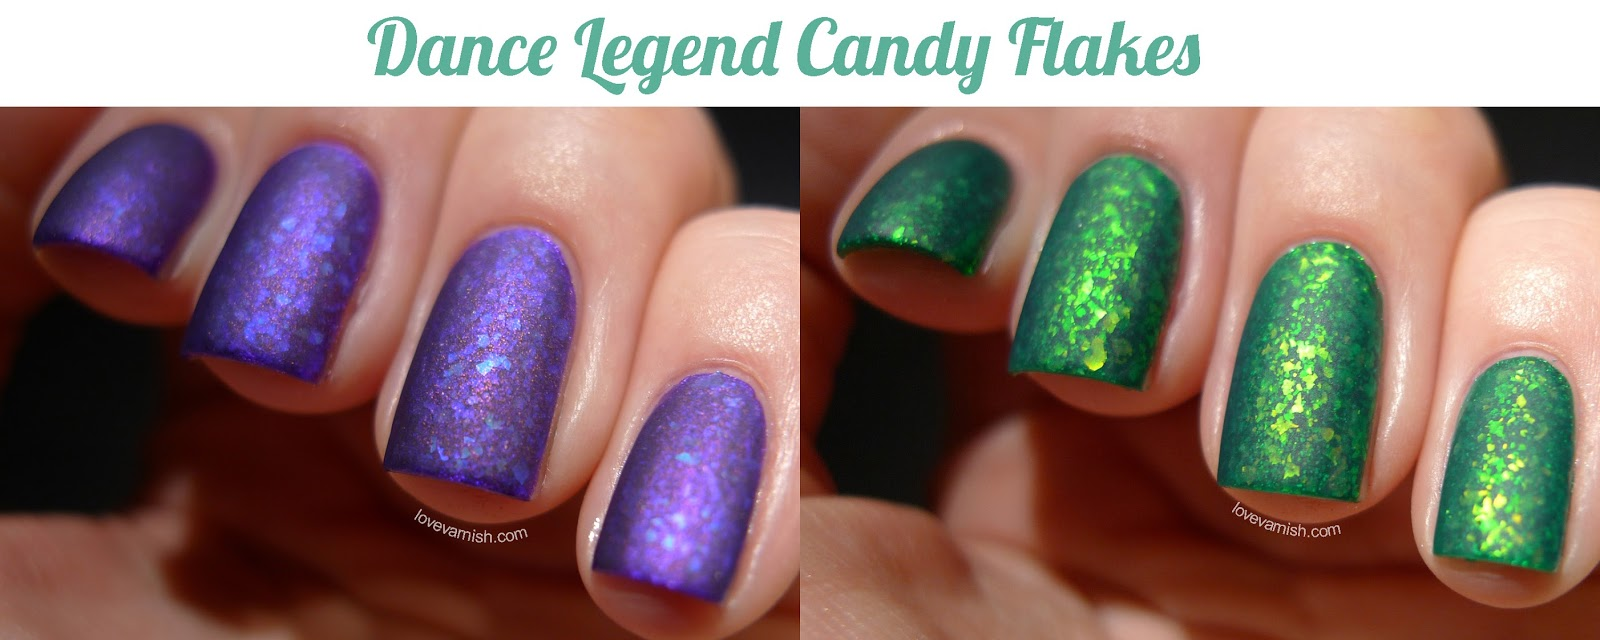 Dance Legend Candy Flakes flakie polishes layered matte